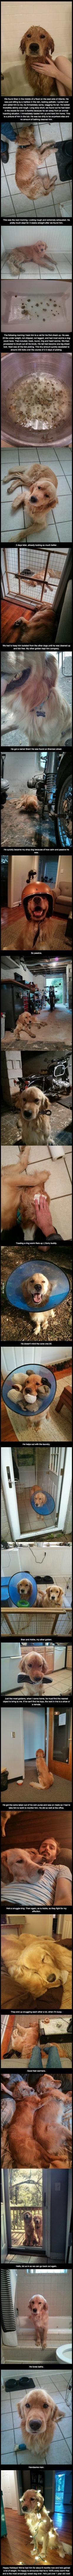 Beautiful story. Some people are good.: Sweet Stories, Golden Retrievers, Faith In Humanity Restored, My Heart, Puppy, Animal